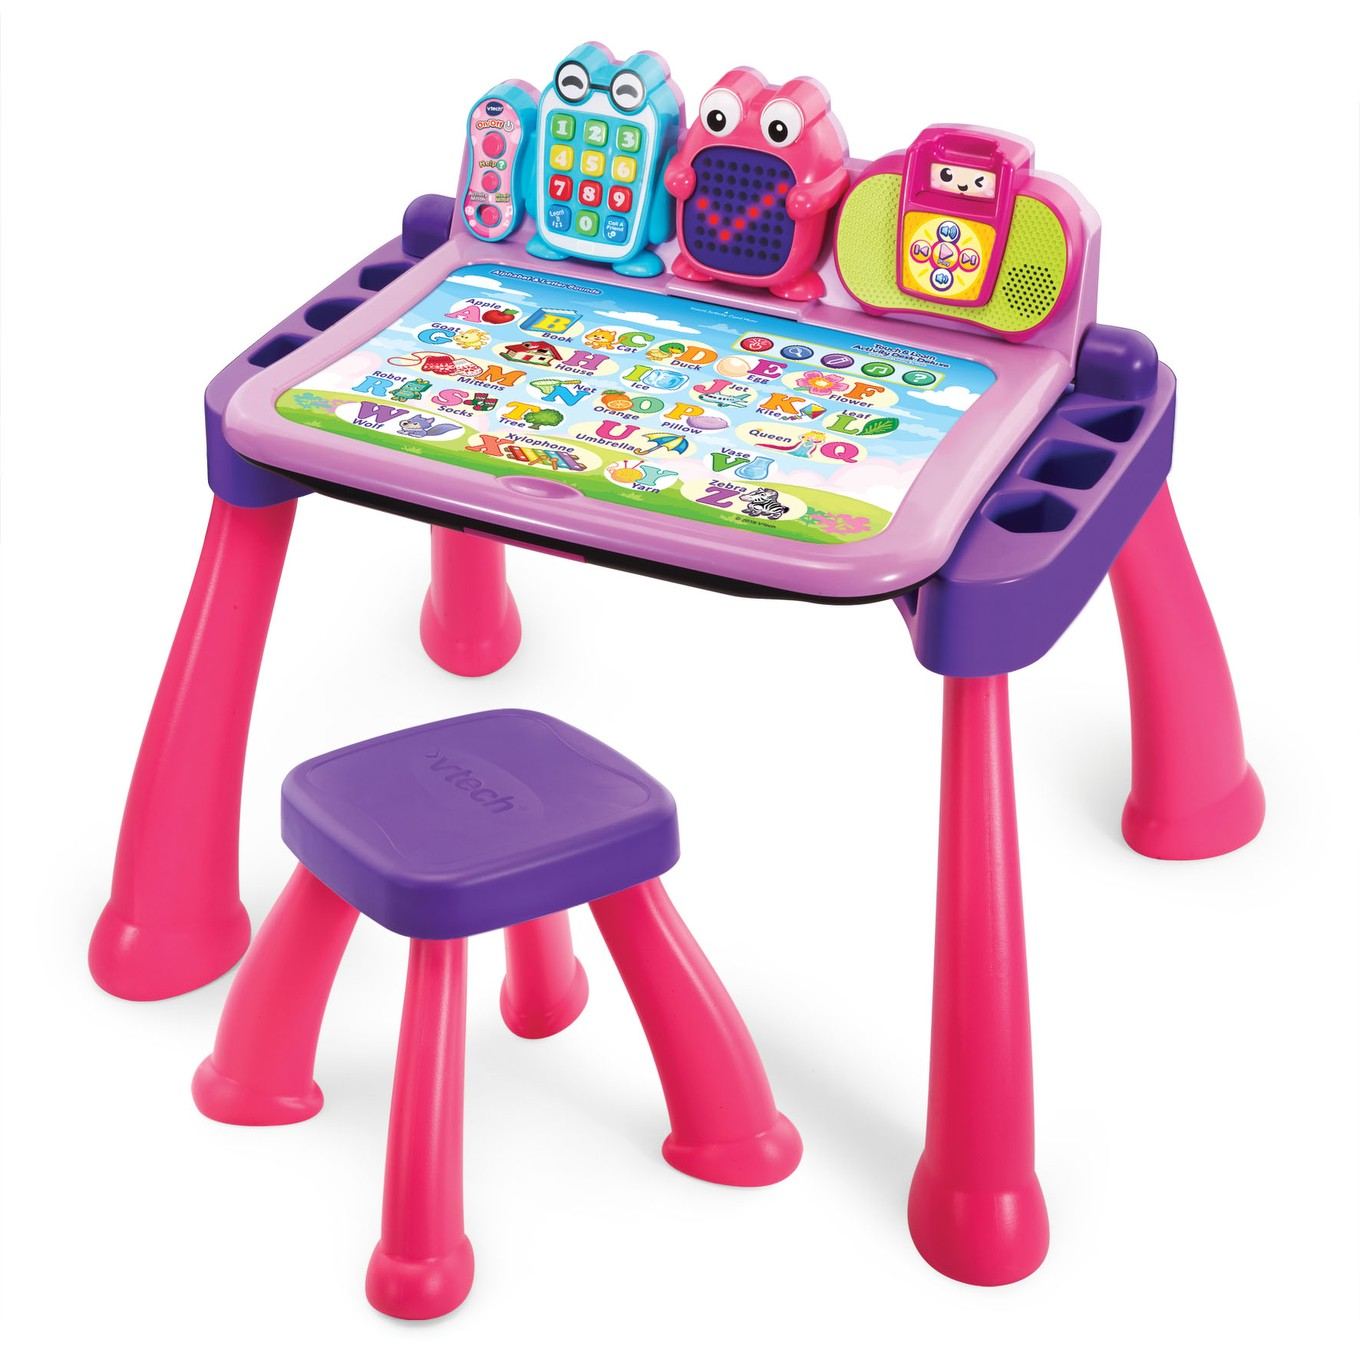 Toy For Ages Five To Seven : Touch learn activity desk™ deluxe │ vtech